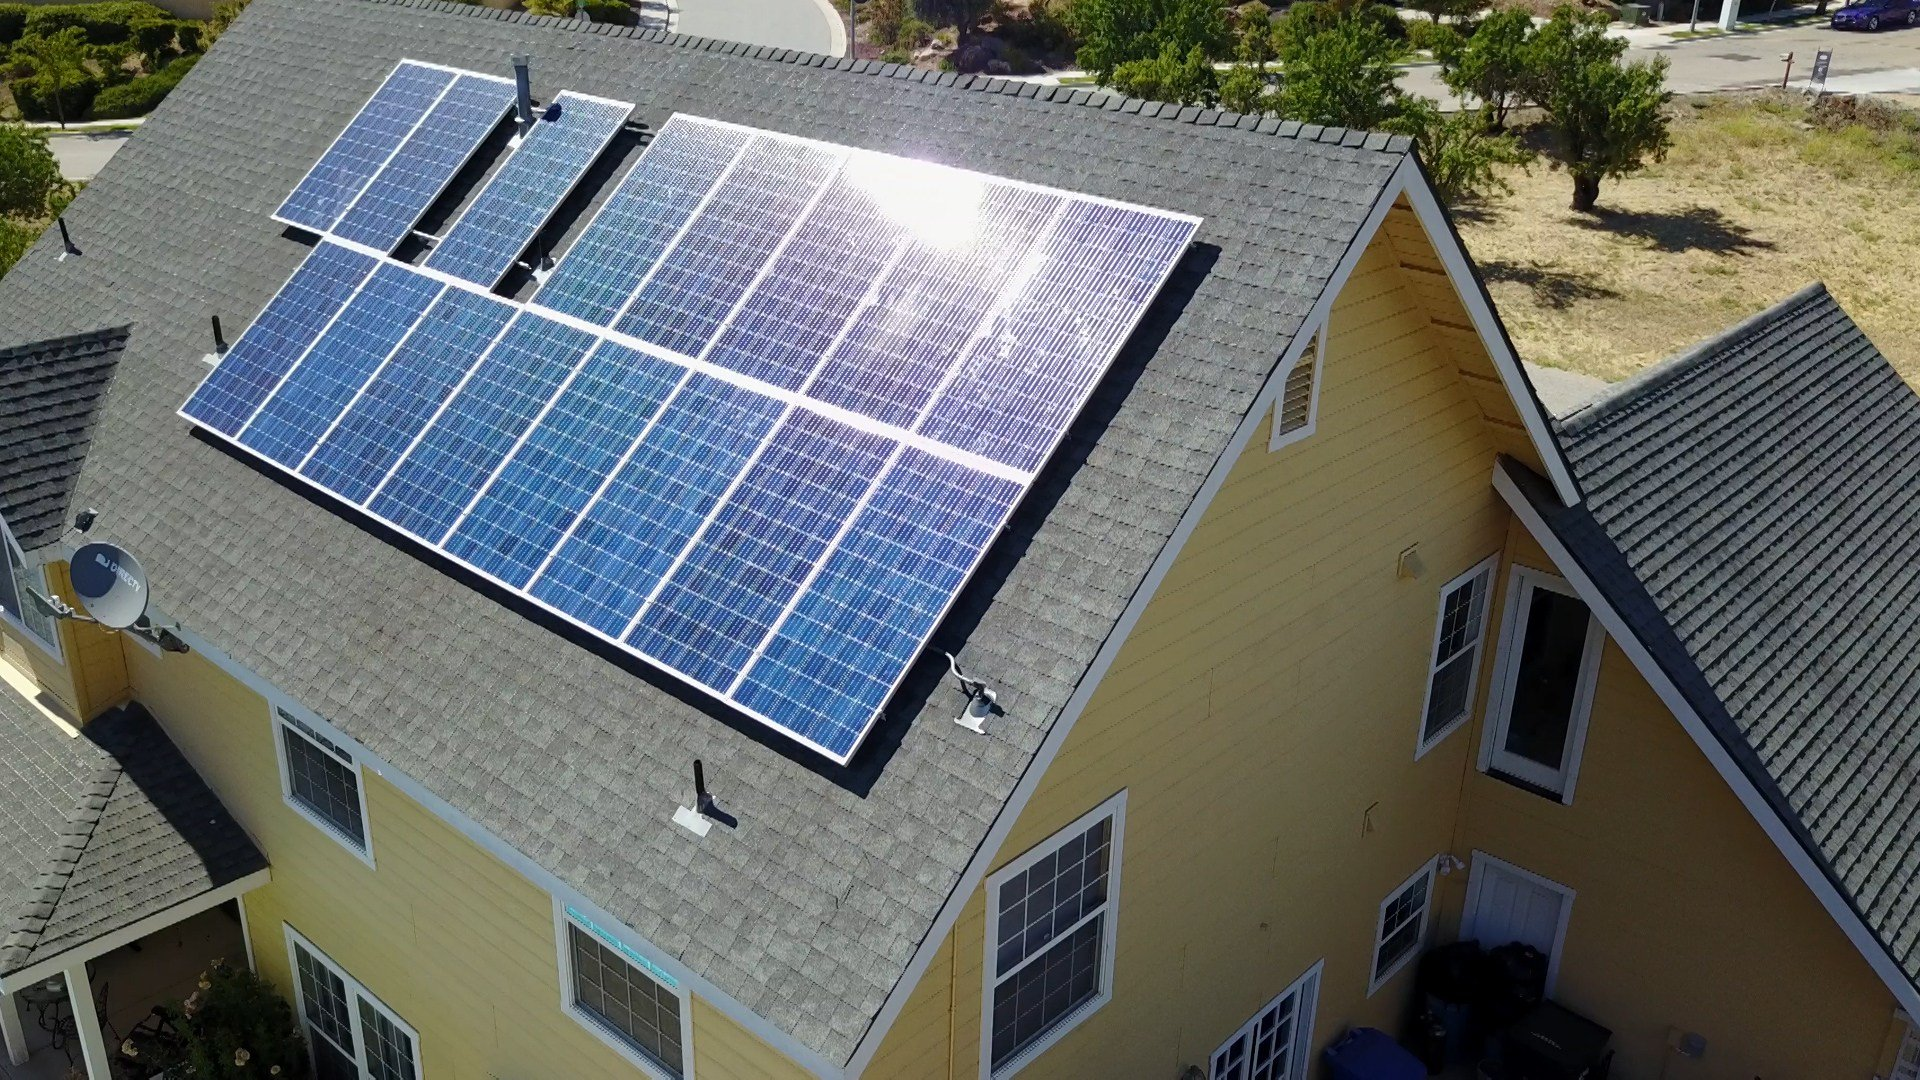 California Just Made History With a Ruling on Compulsory Solar Panels